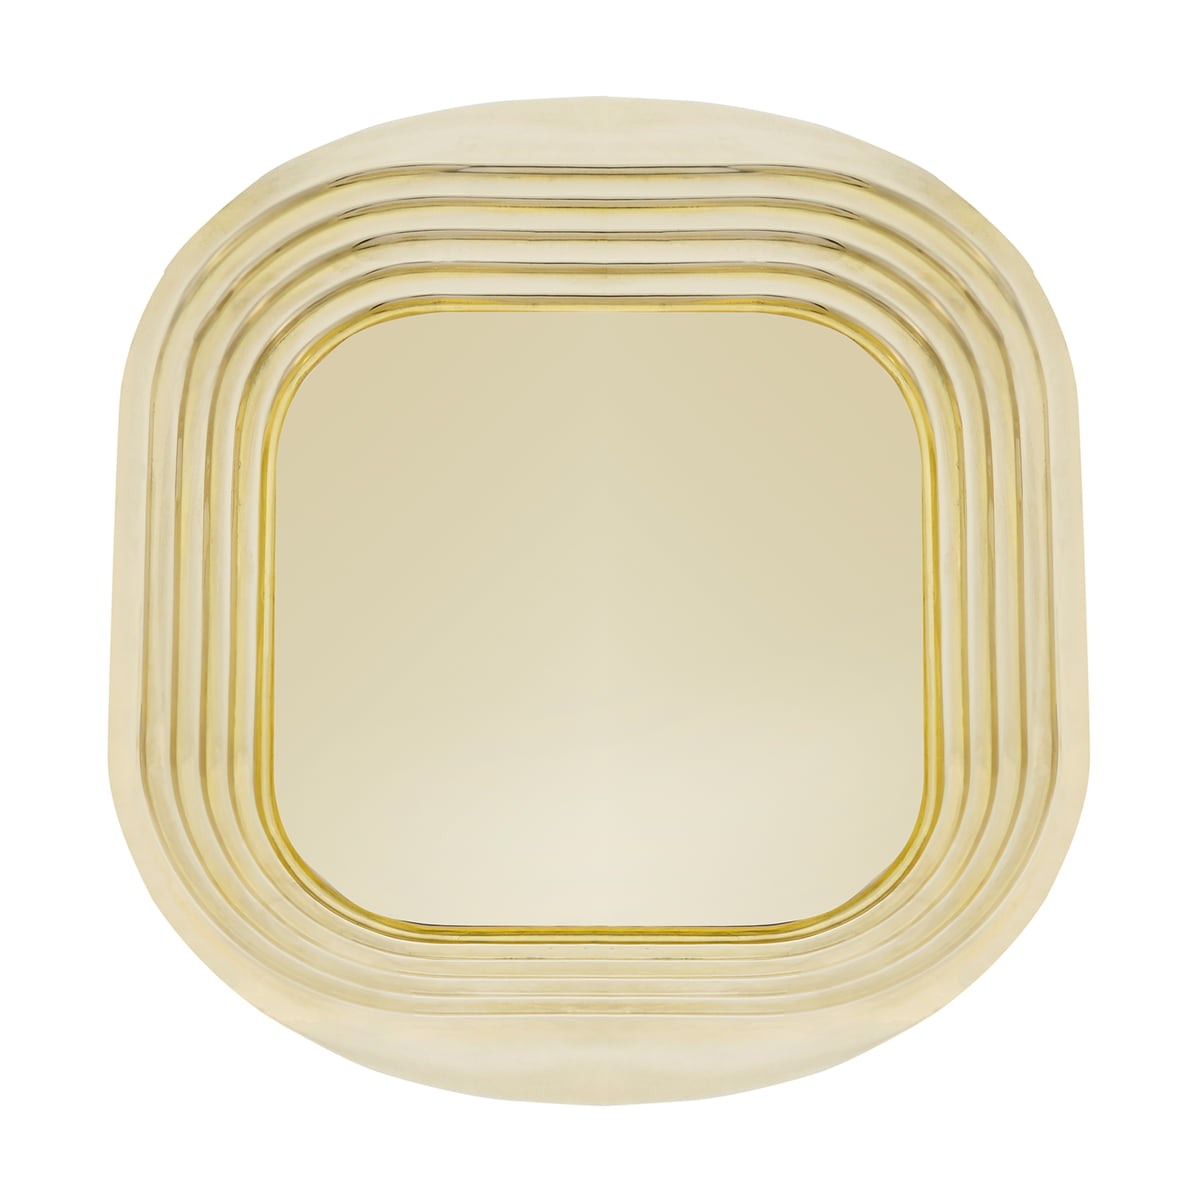 Form Tray By Tom Dixon In The Shop